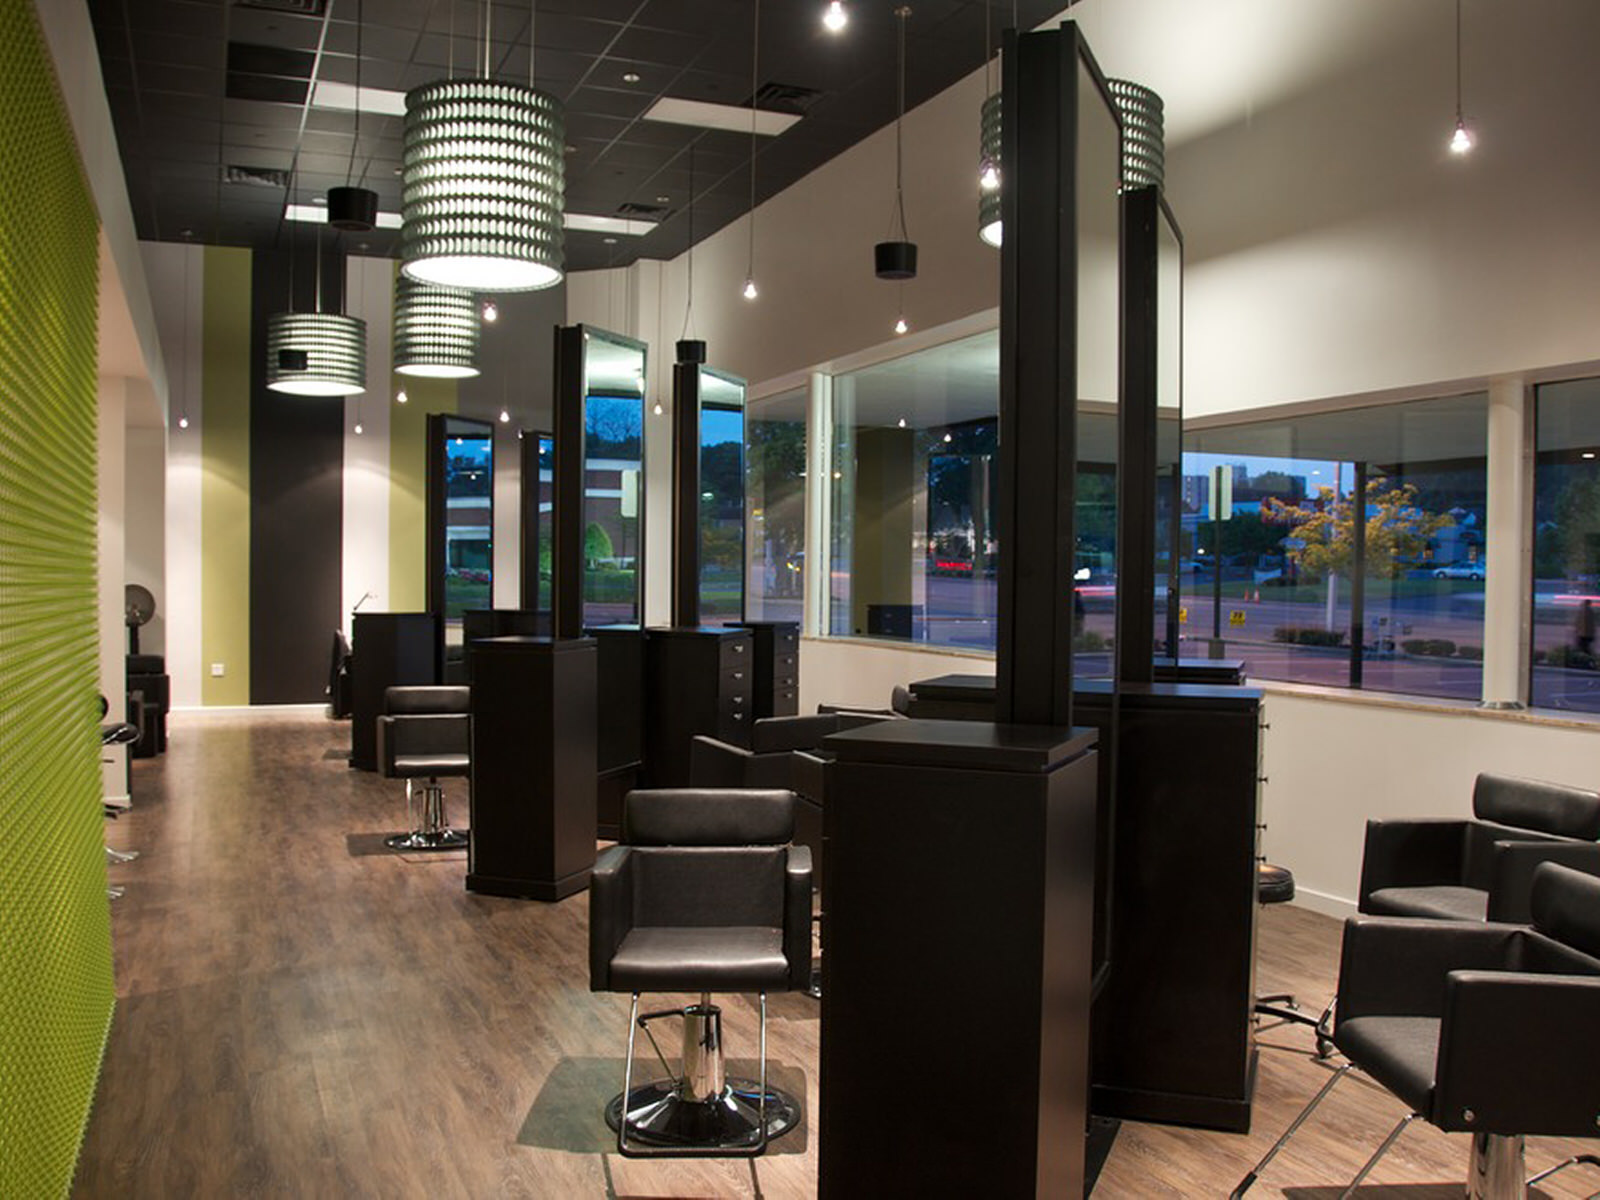 Gould's-Day-Spa-and-Salon-of-Collierville-Tennessee---Interior.jpg